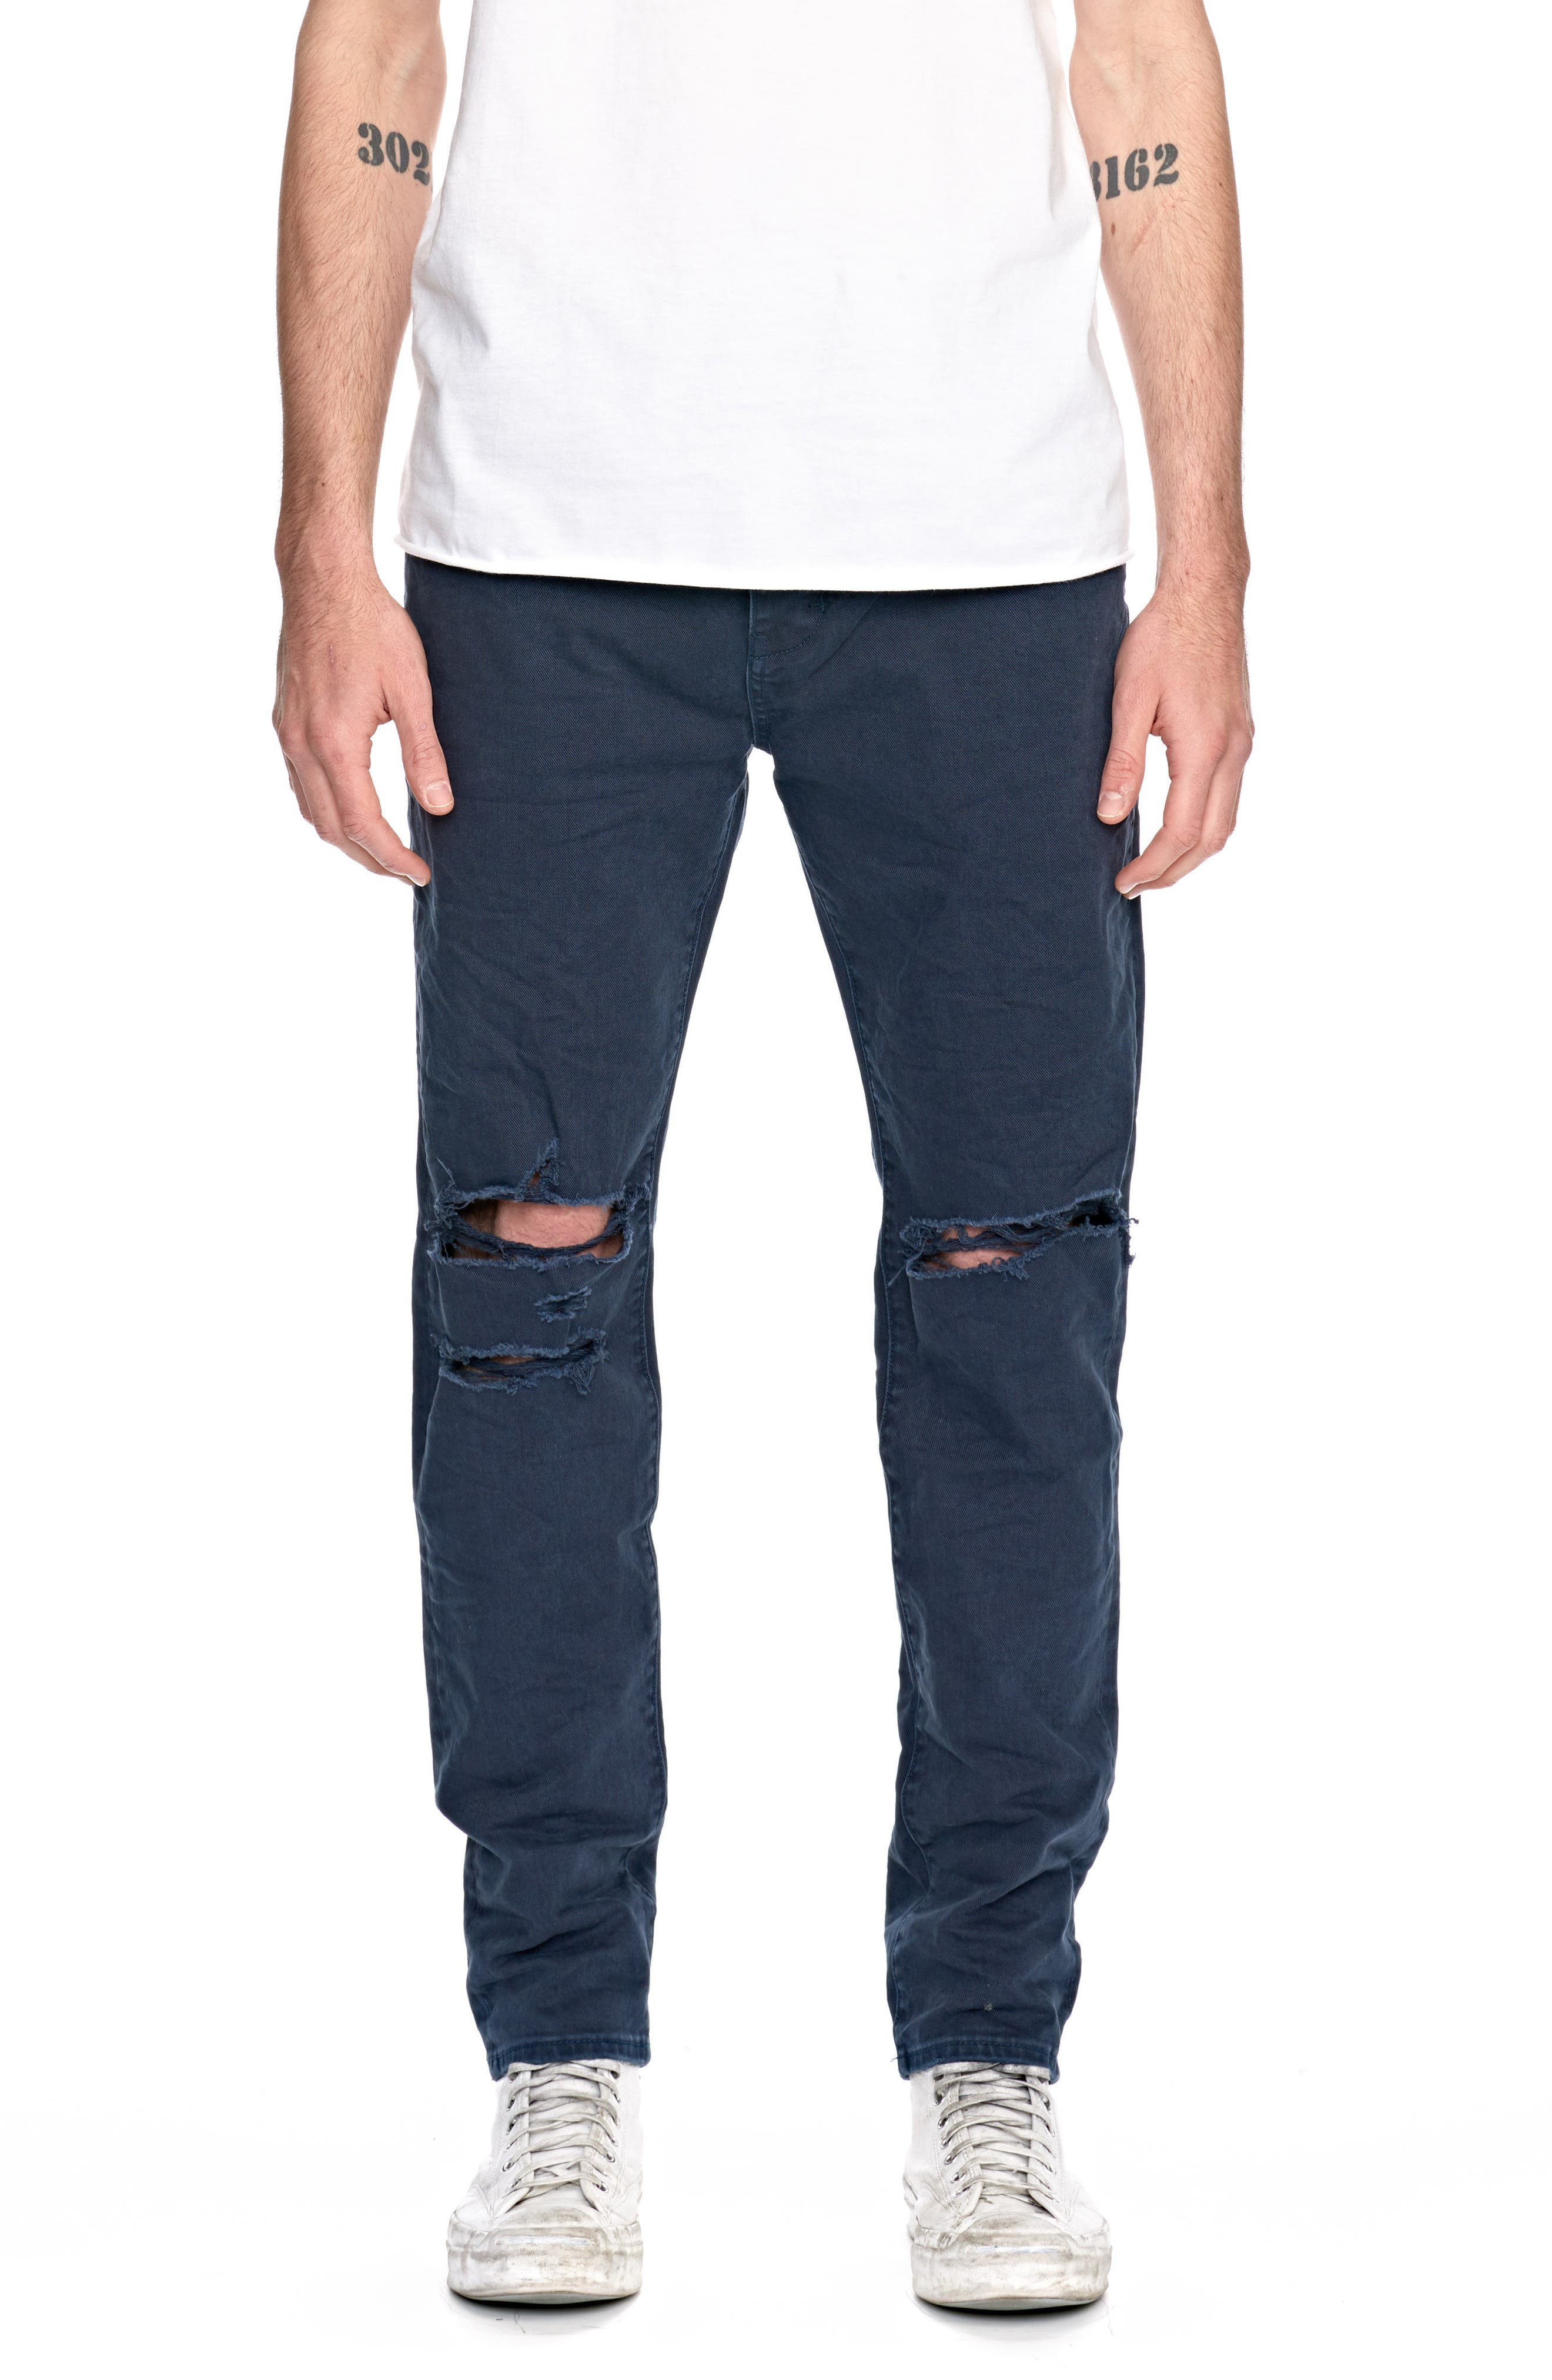 Ray Slouchy Slim Fit Jeans,                         Main,                         color, Busted Navy